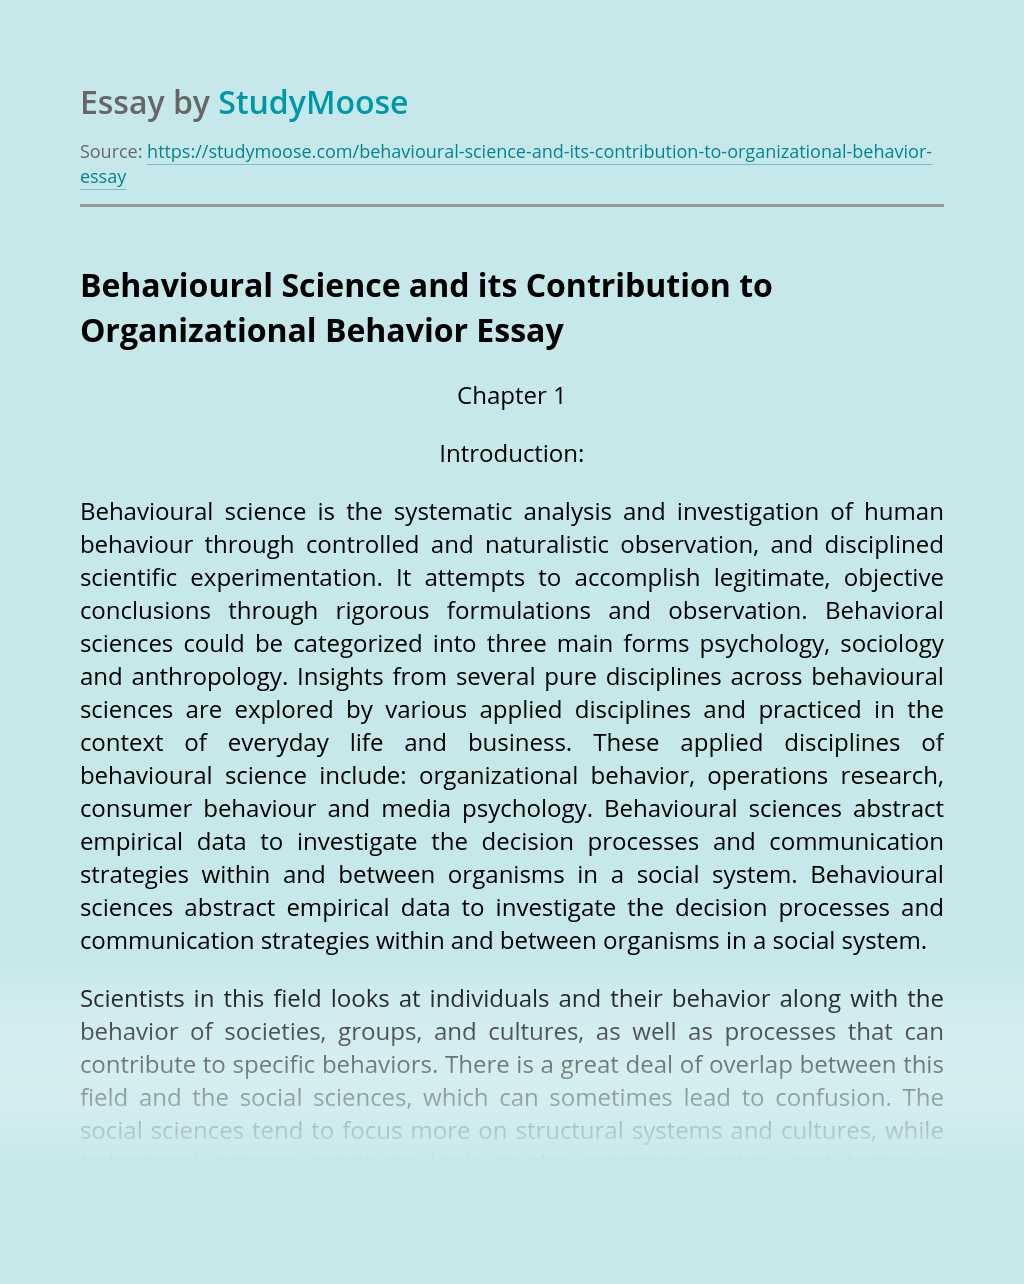 Behavioural Science and its Contribution to Organizational Behavior